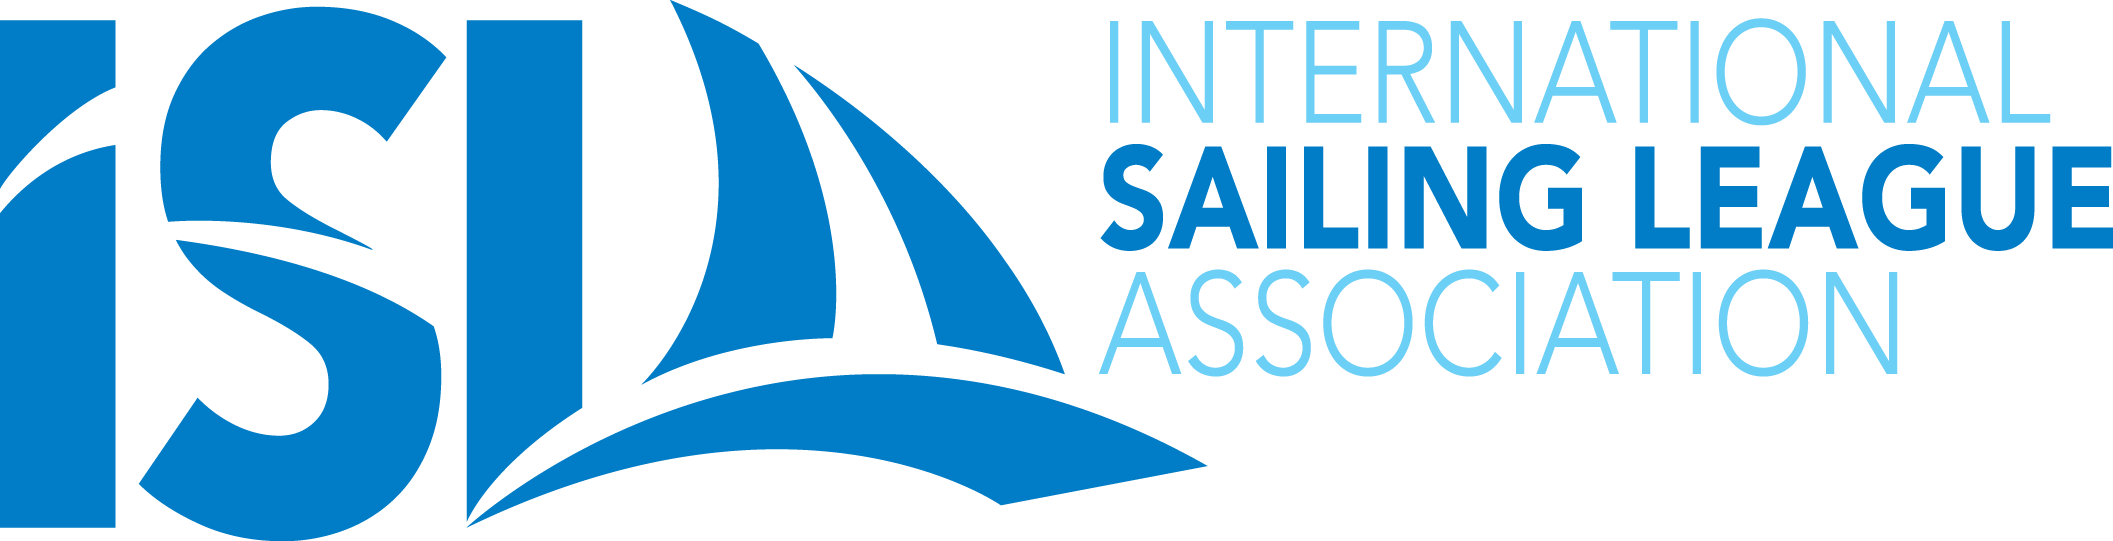 International Sailing League Association